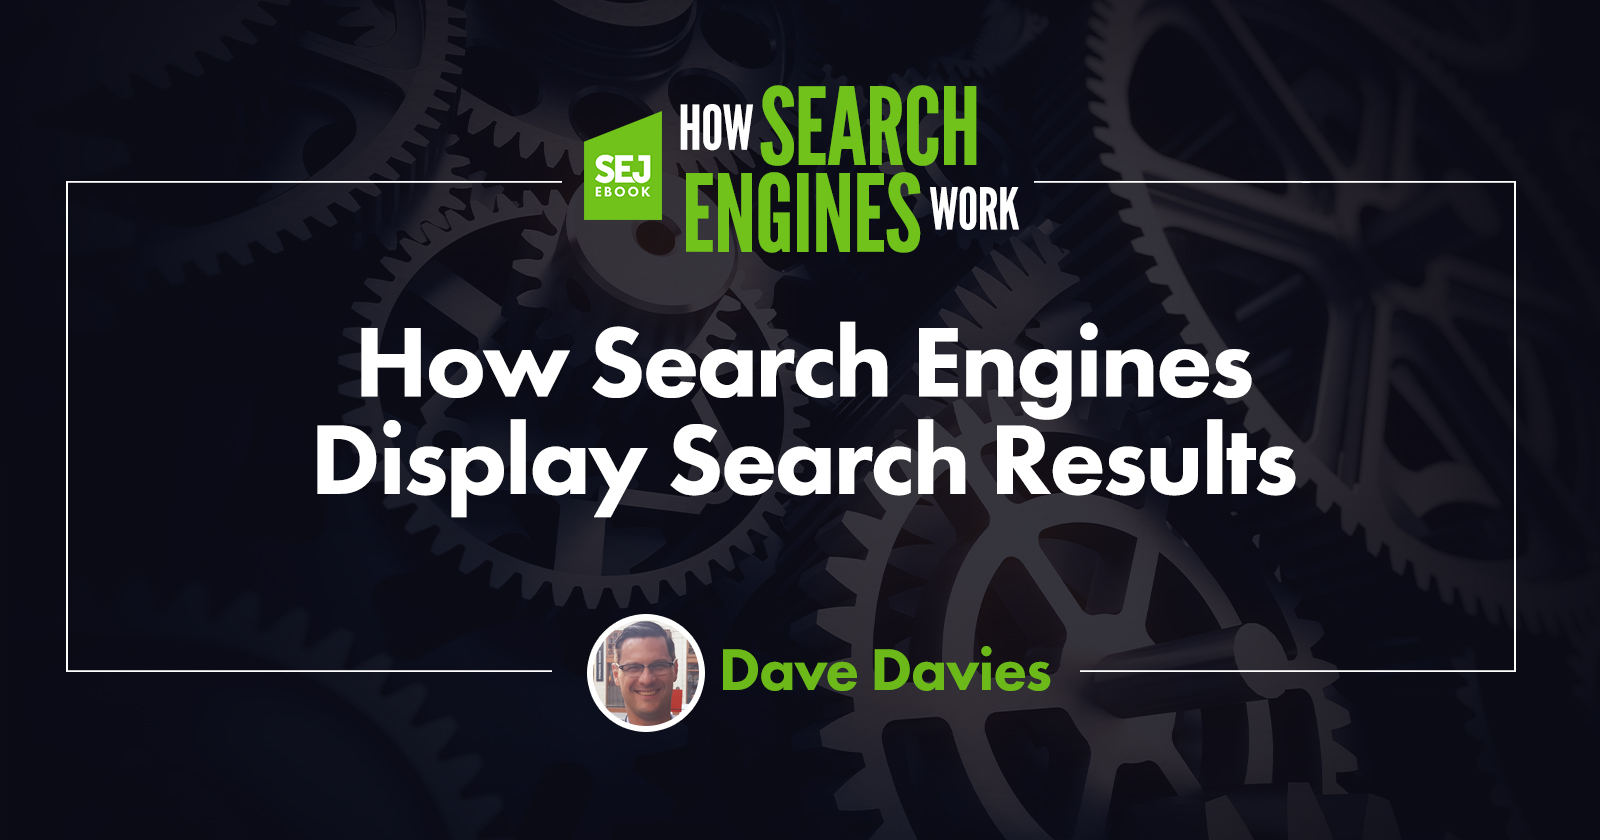 how search engines display search results 5eb2ea6fca0bc